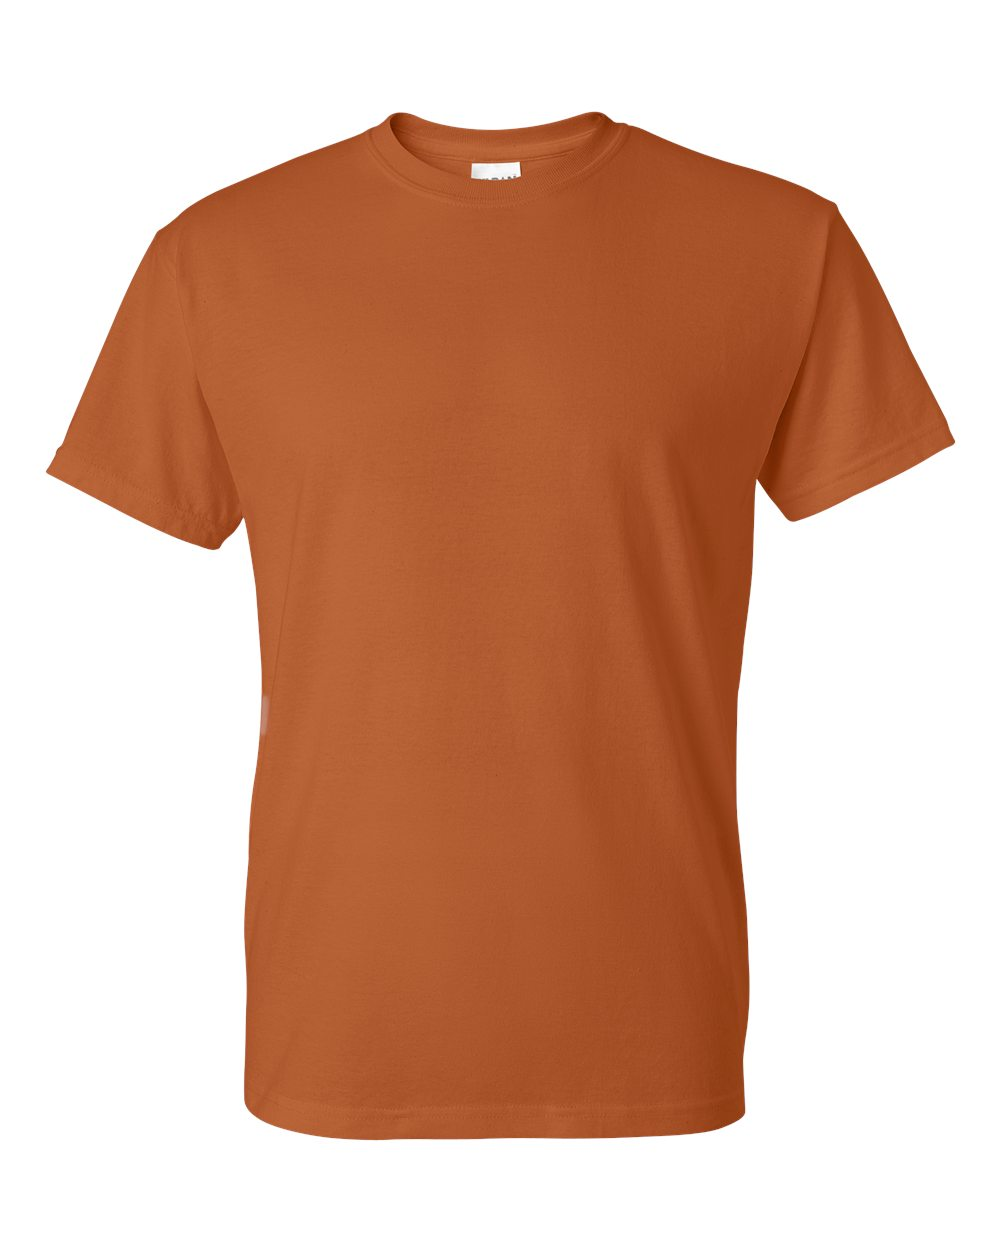 click to view Texas Orange